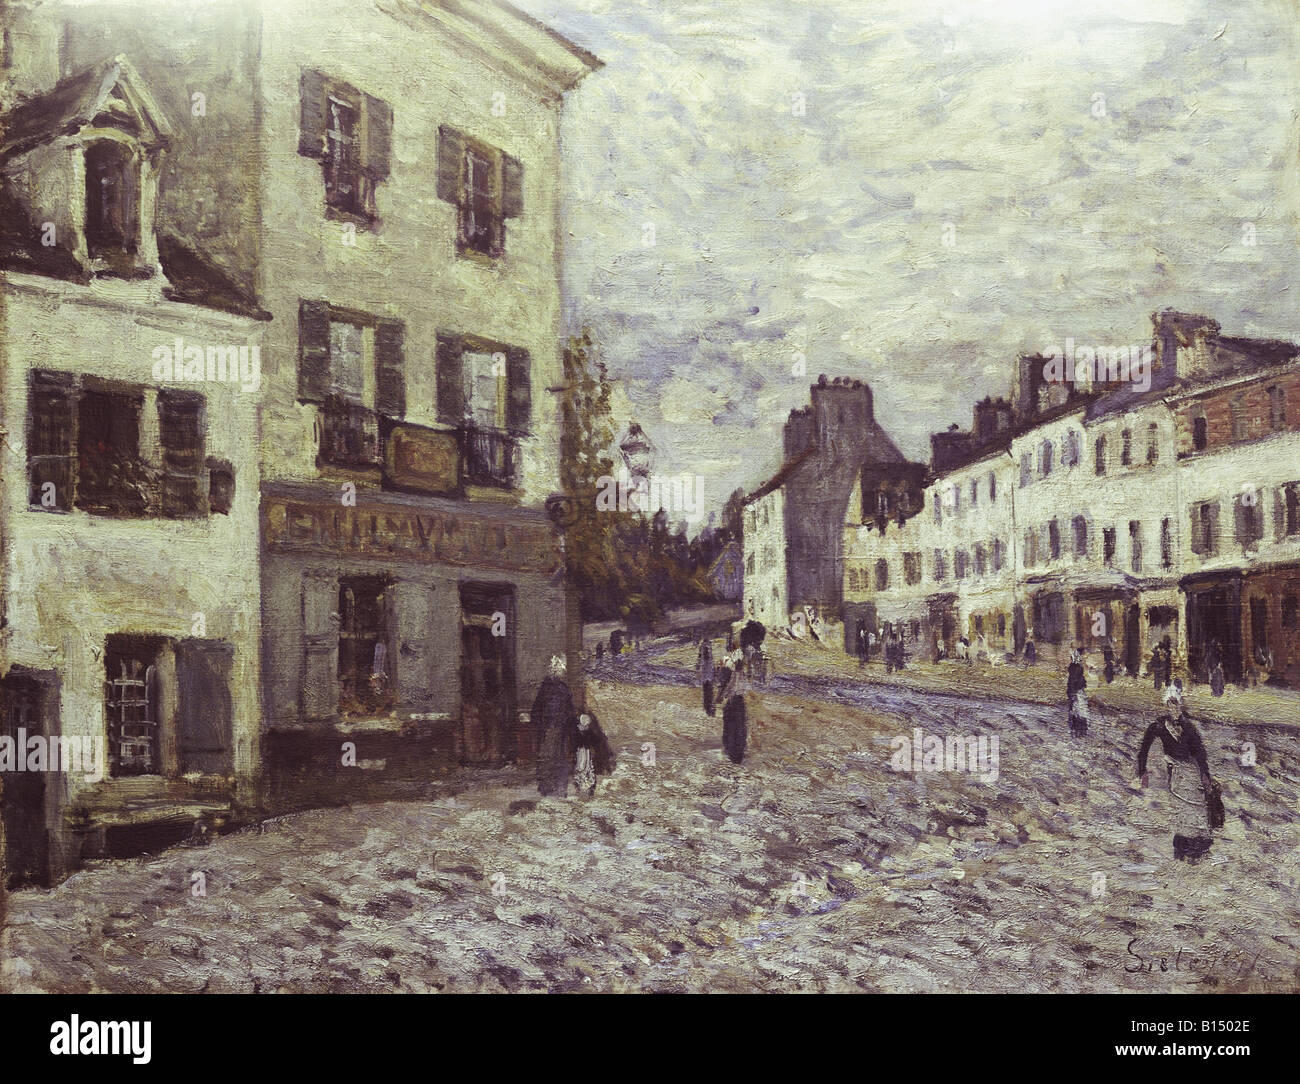 fine arts, Sisley, Alfred, (1839 - 1899), painting, 'Street in Marly', oil on canvas, 50 x 65 cm, 1876, - Stock Image